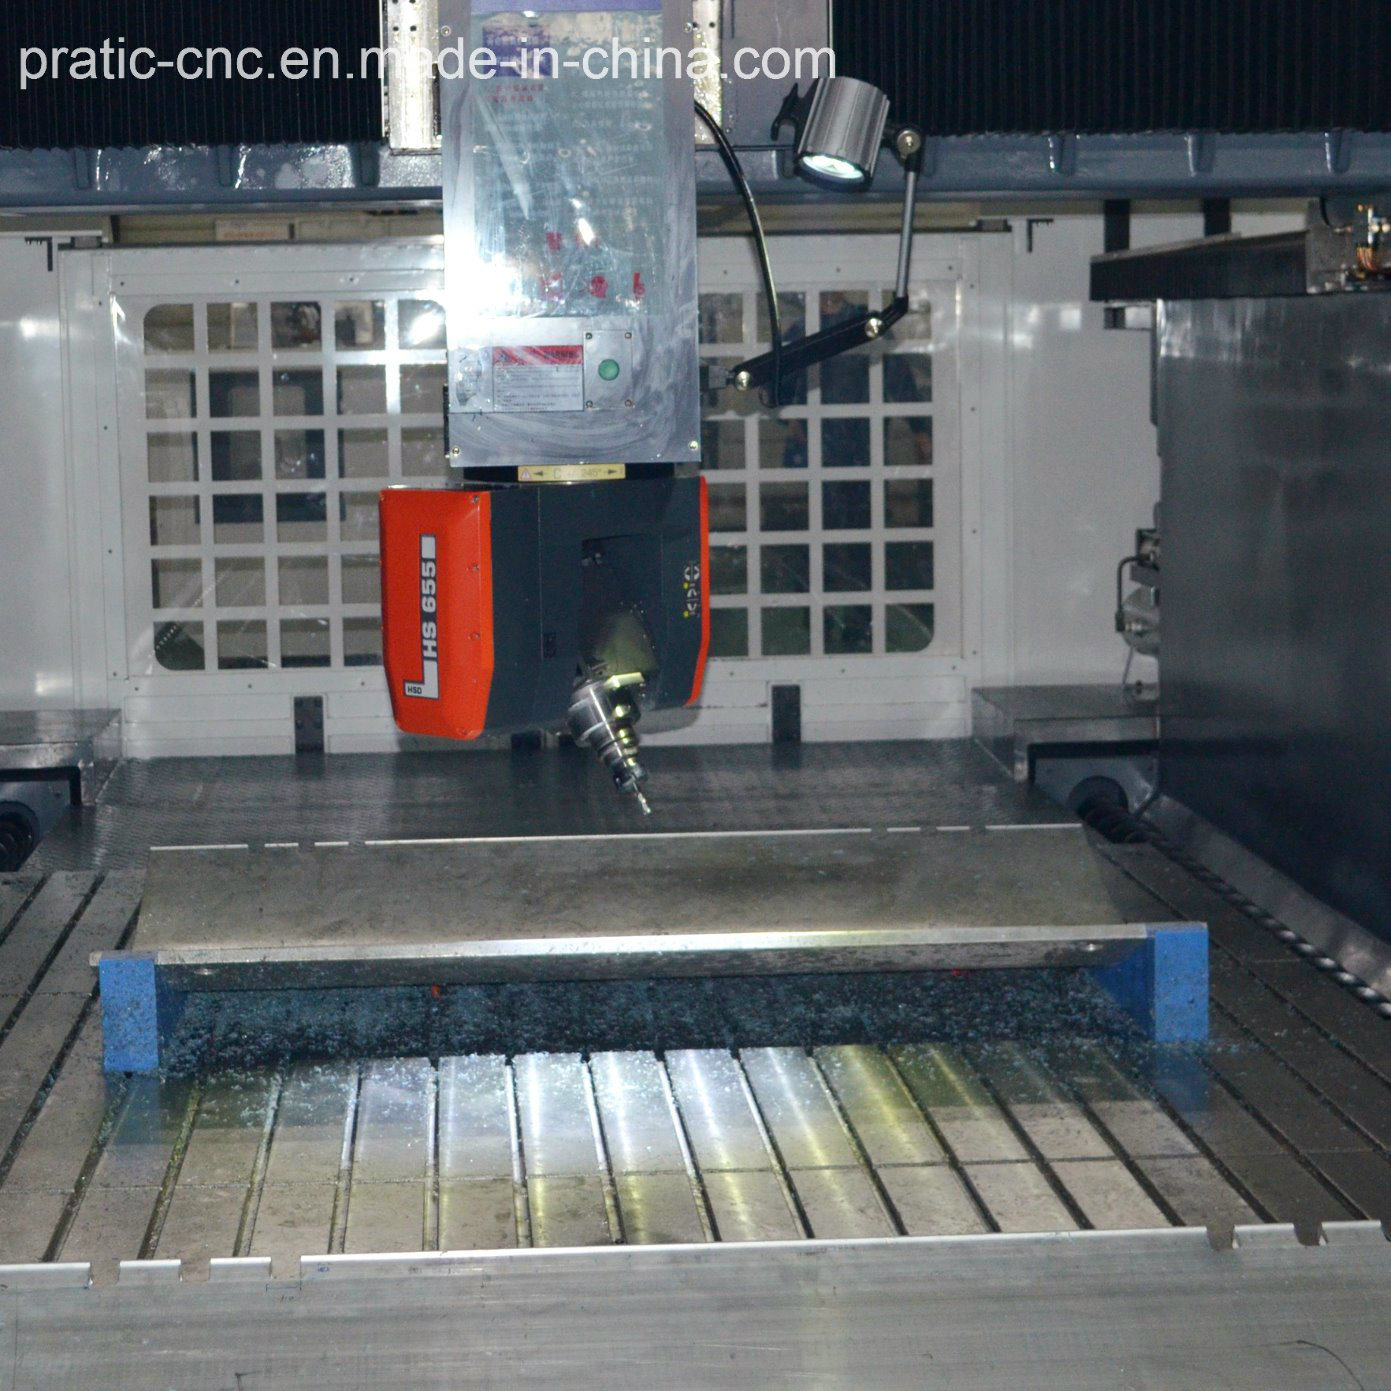 CNC Automative Welding Machinery Pratic-Phb-CNC4500